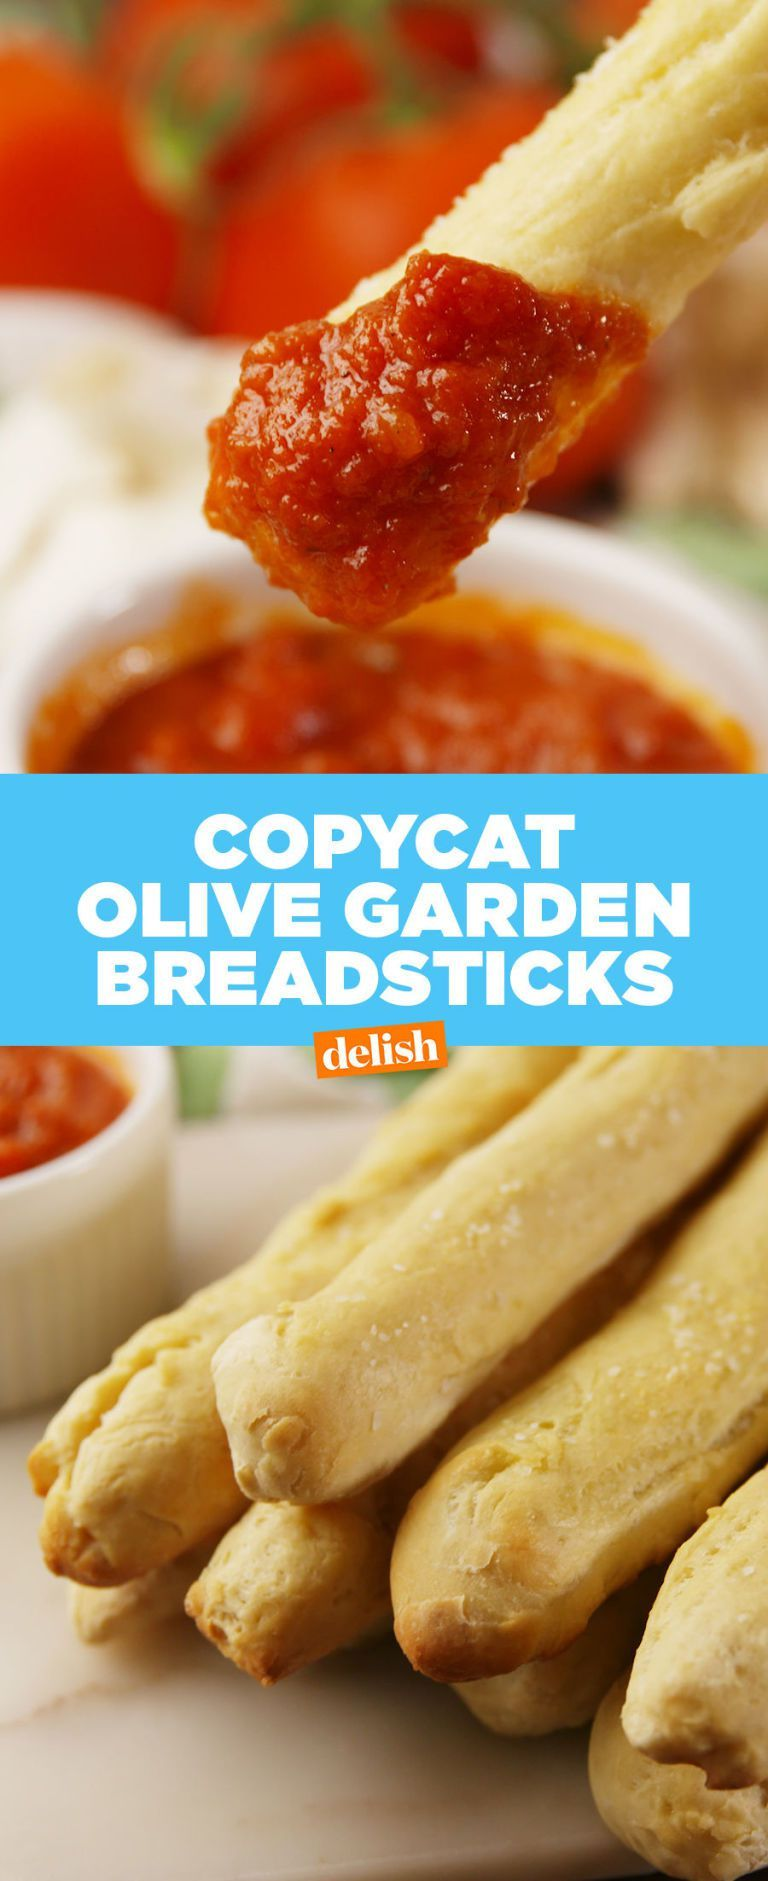 These Copycat Olive Garden Breadsticks Are Better Than The